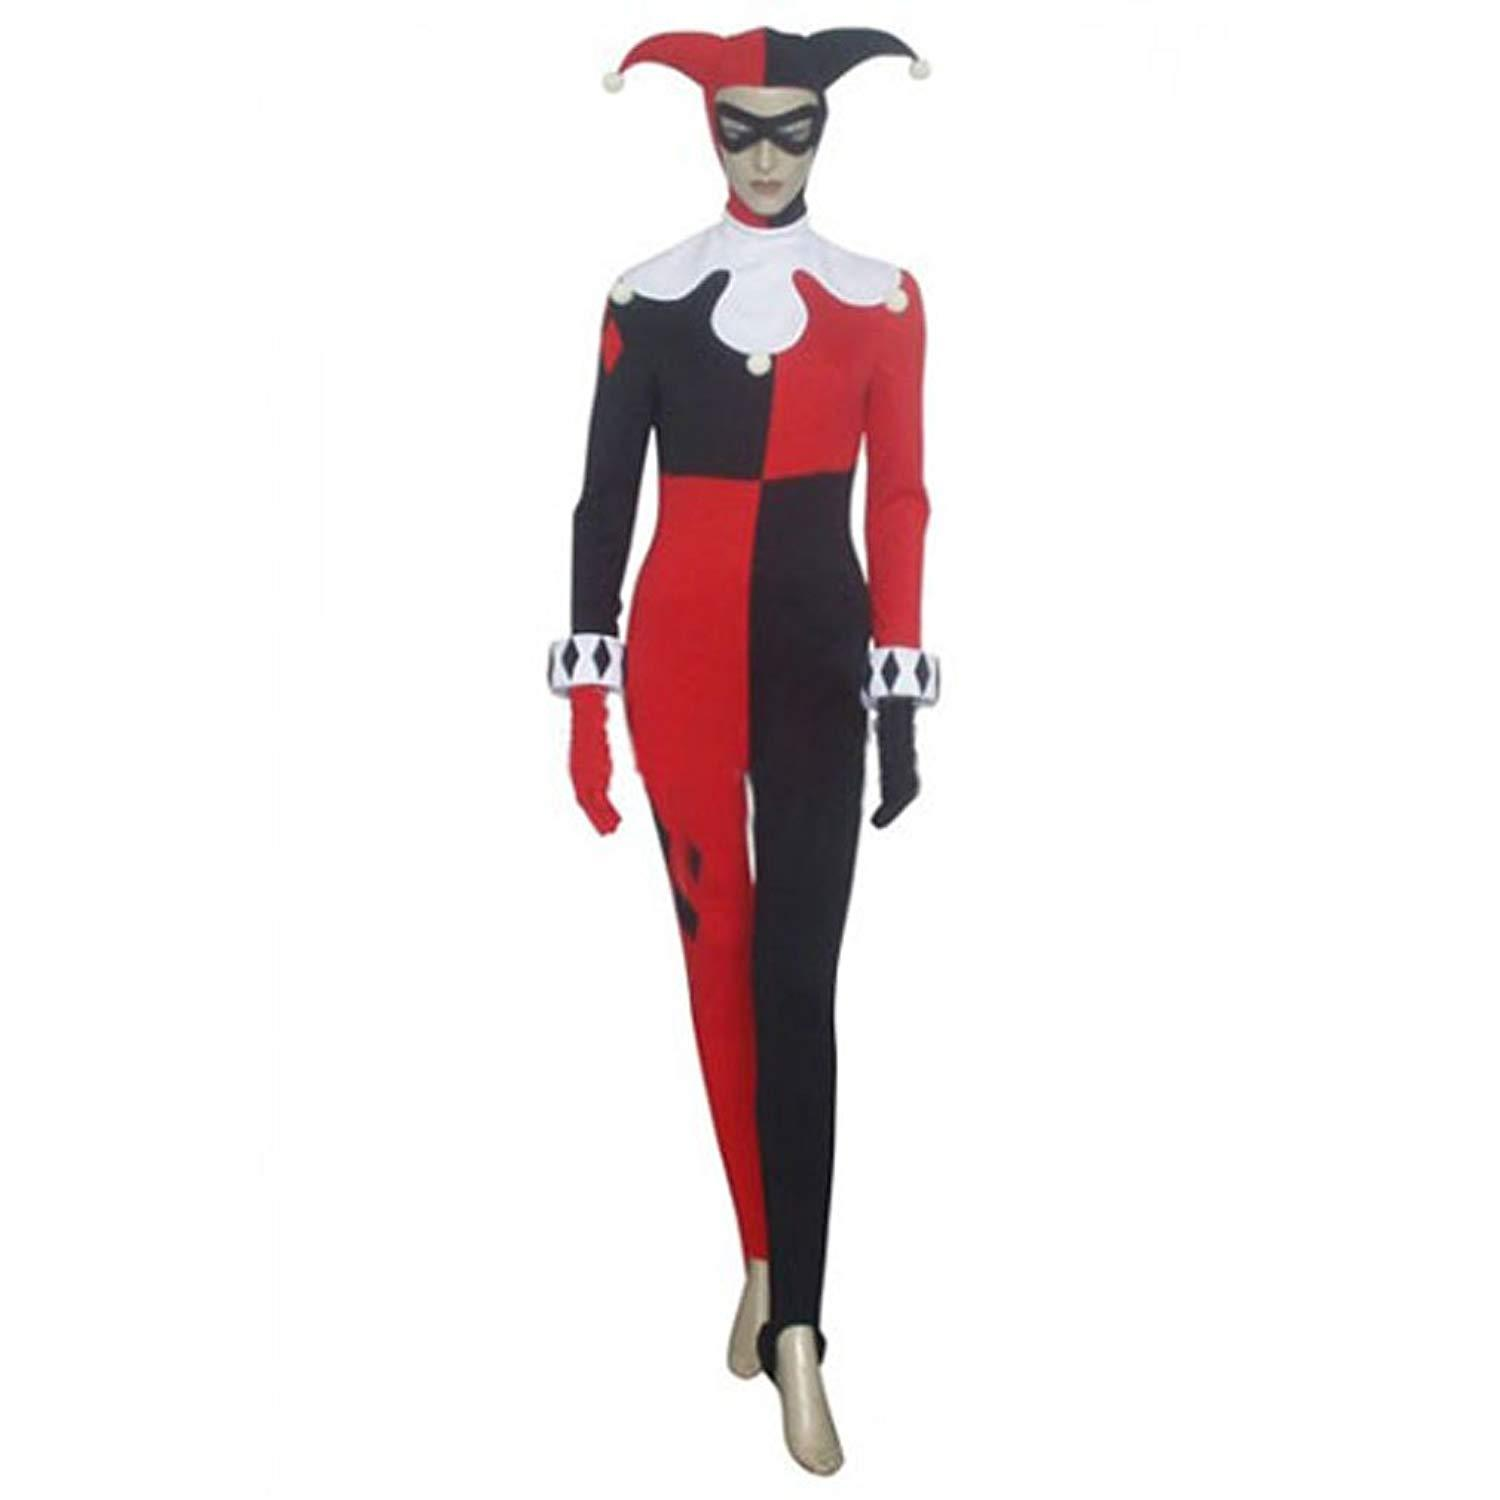 Women's Clown Costume Arkham Asylum Harley Quinn Cosplay Outfit